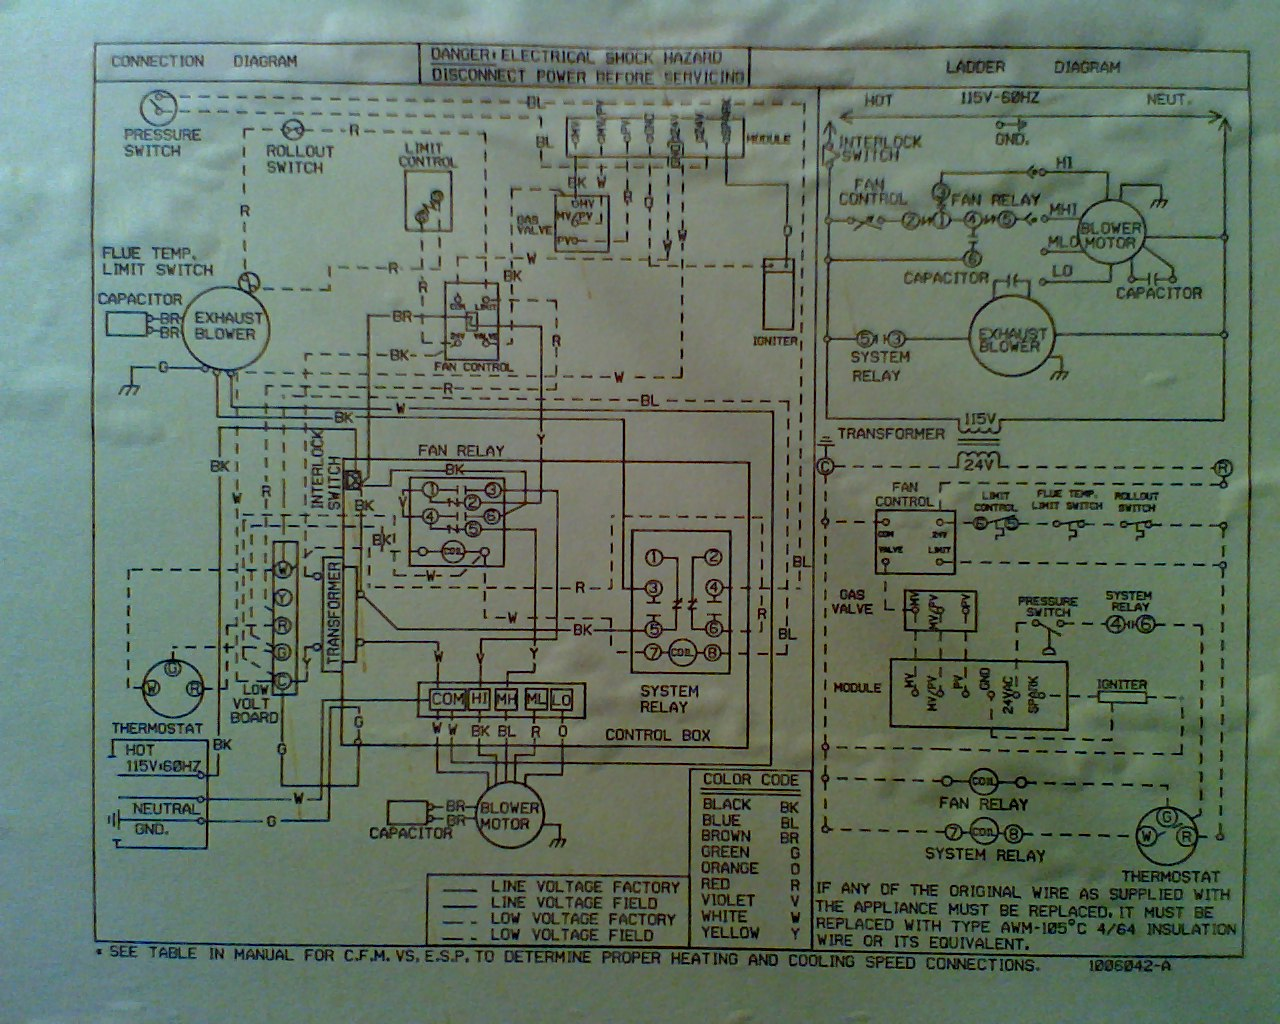 2009 11 20_231603_1120091711a air conditioner y wire grihon com ac, coolers & devices tempstar 2200 air conditioner wiring diagram at readyjetset.co